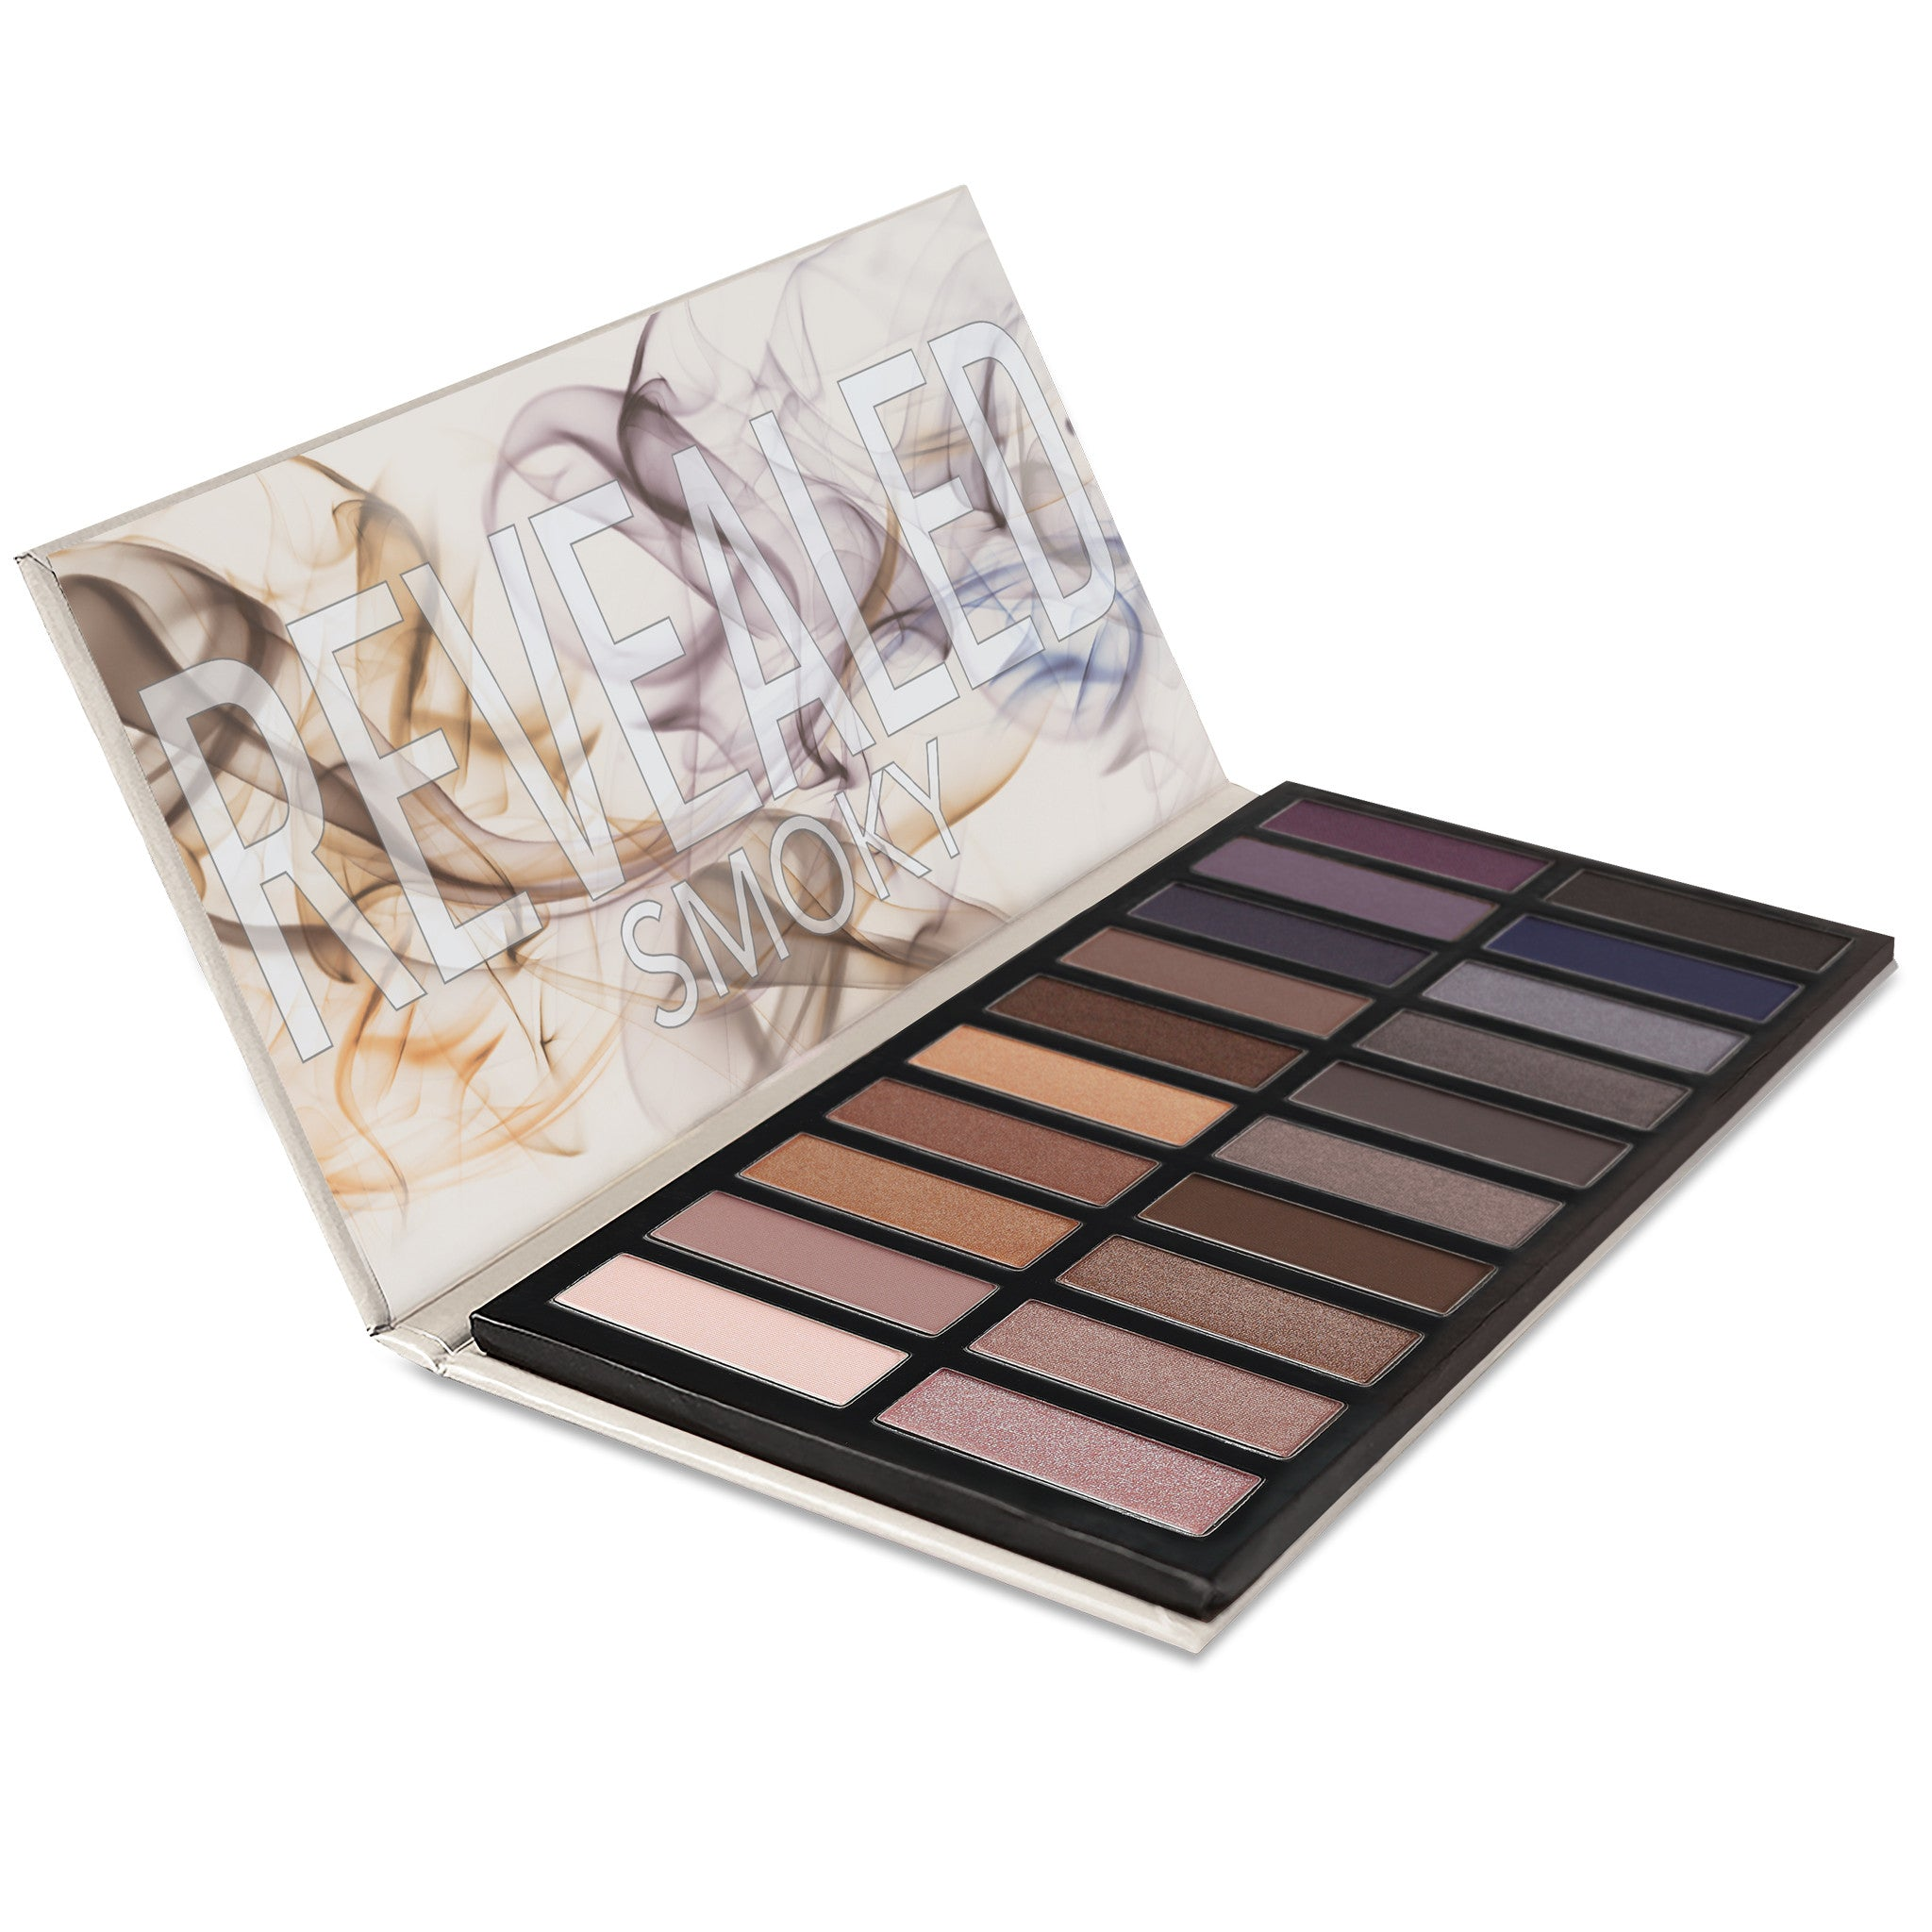 Coastal Scents coupon: Revealed Smoky Eyeshadow Palette